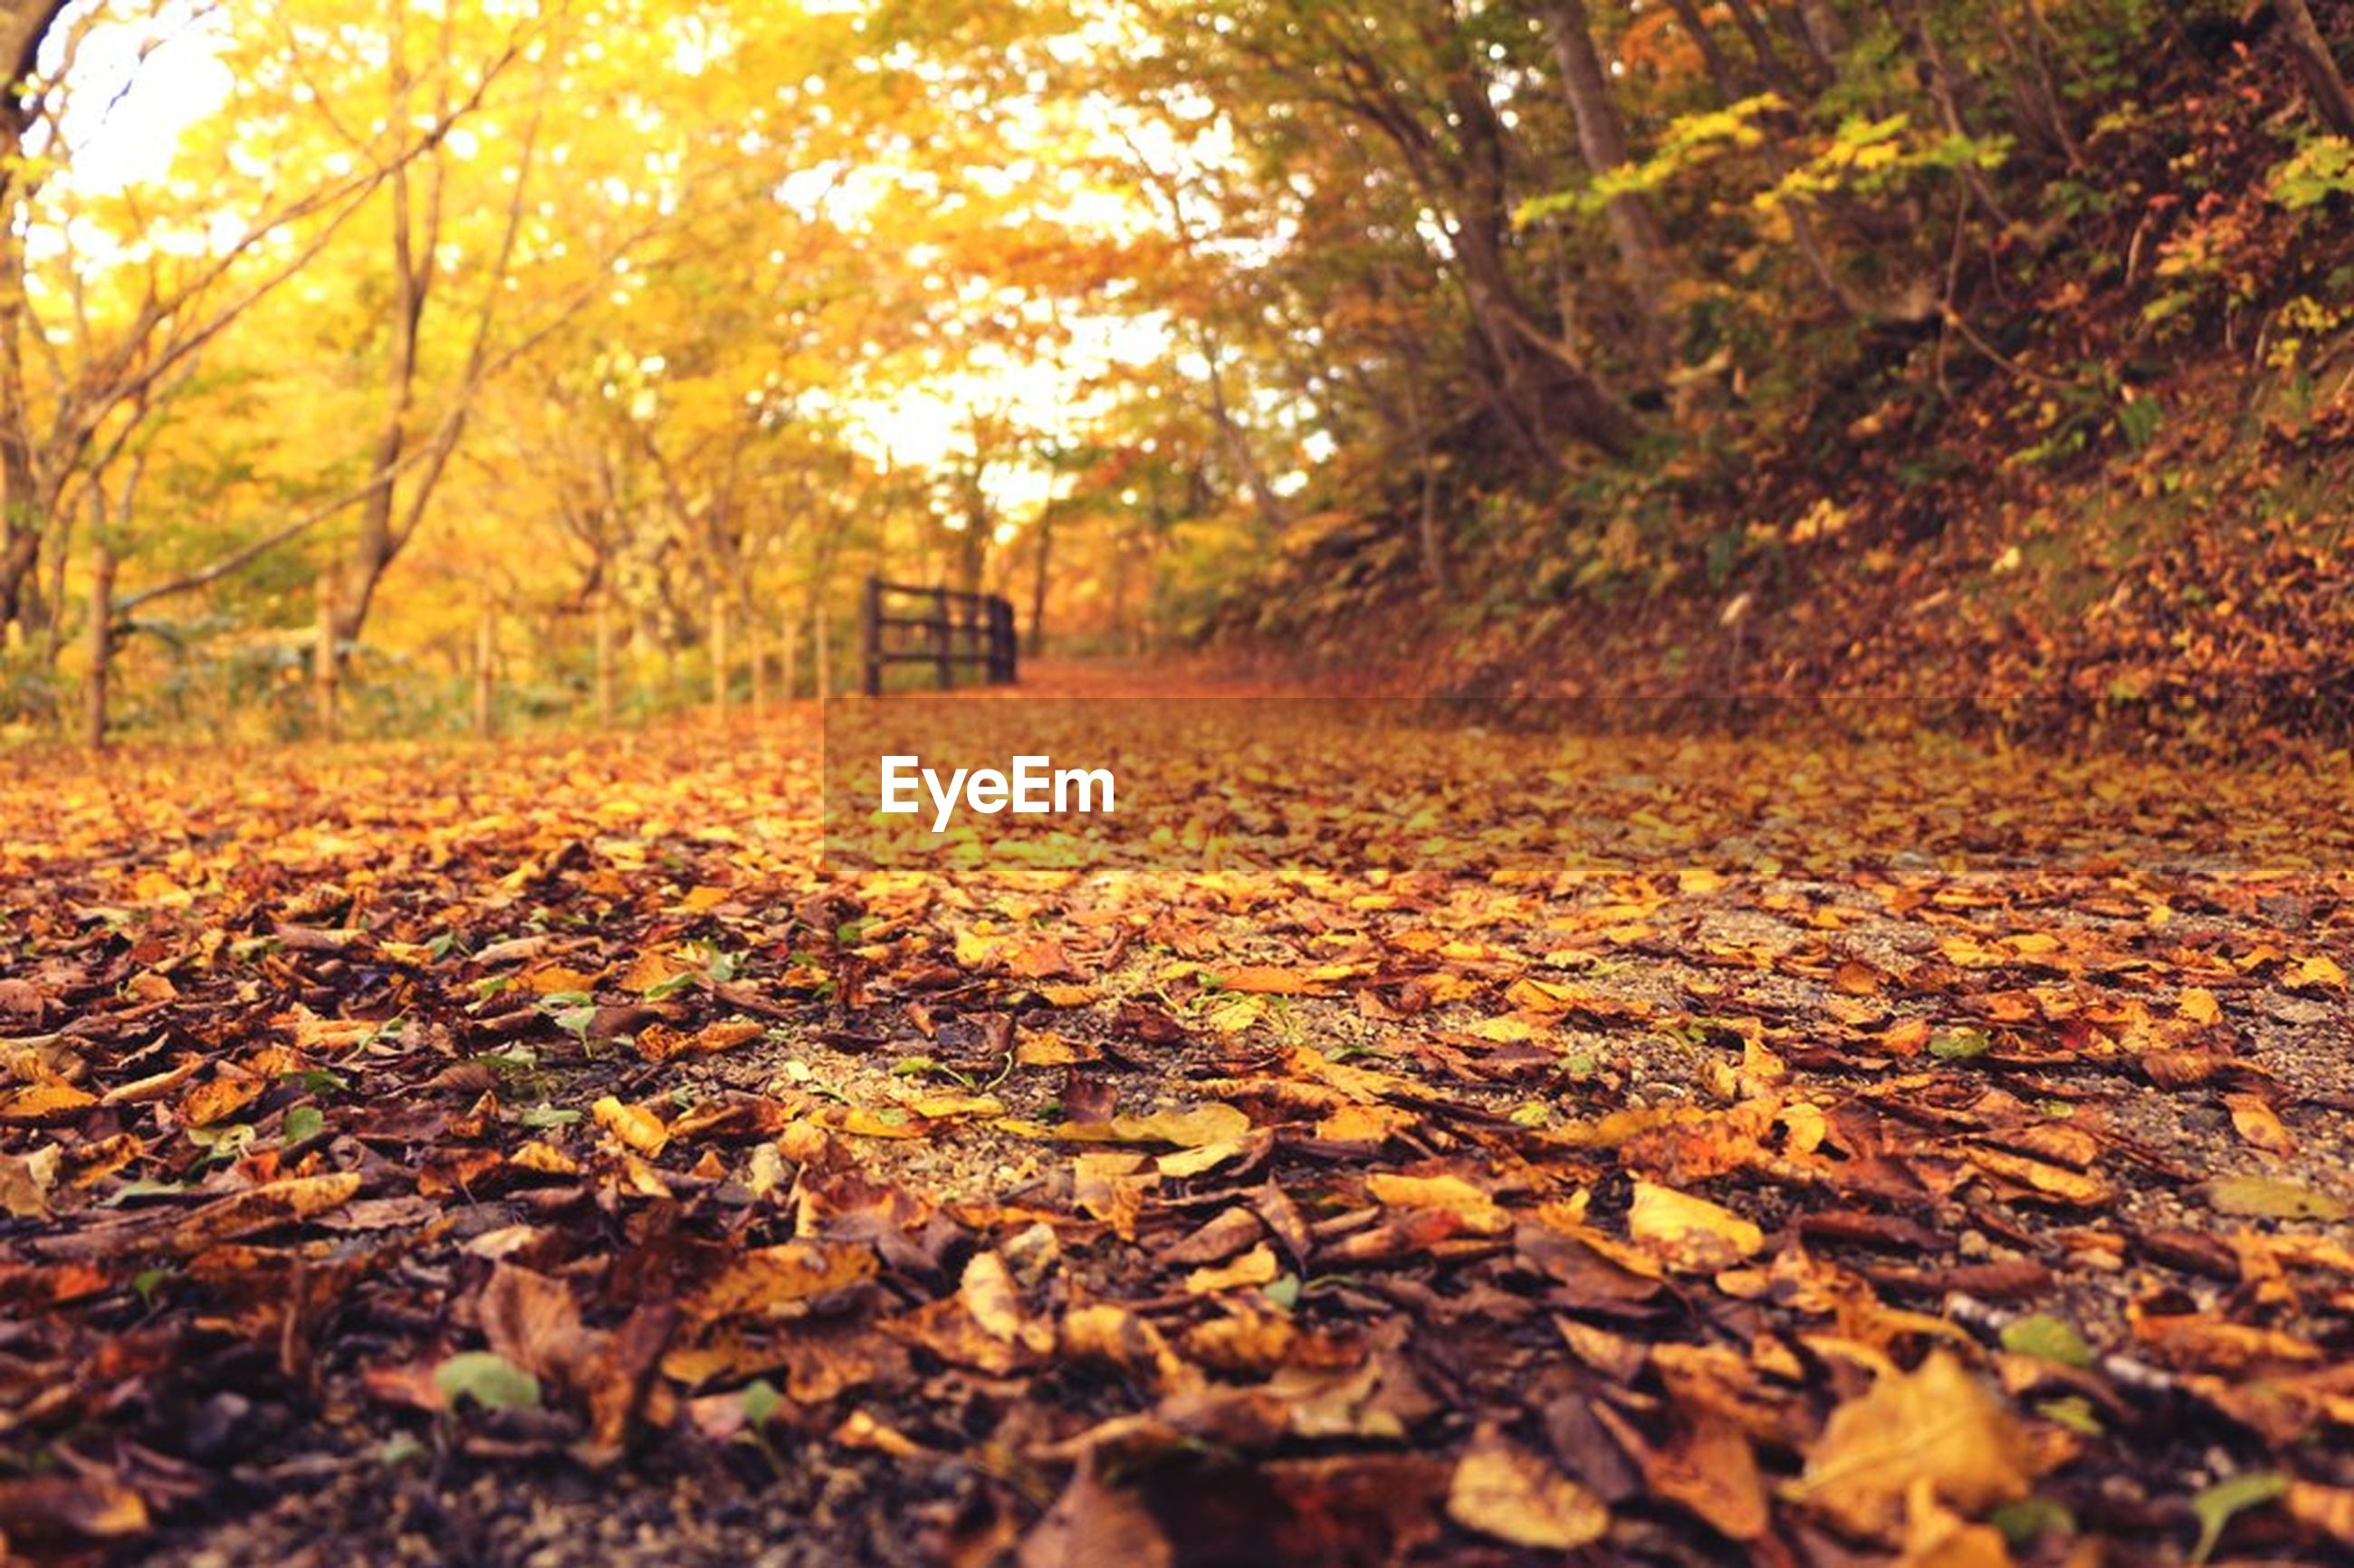 autumn, change, season, leaf, tree, fallen, leaves, dry, orange color, tranquility, nature, surface level, the way forward, yellow, falling, tranquil scene, beauty in nature, forest, transportation, outdoors